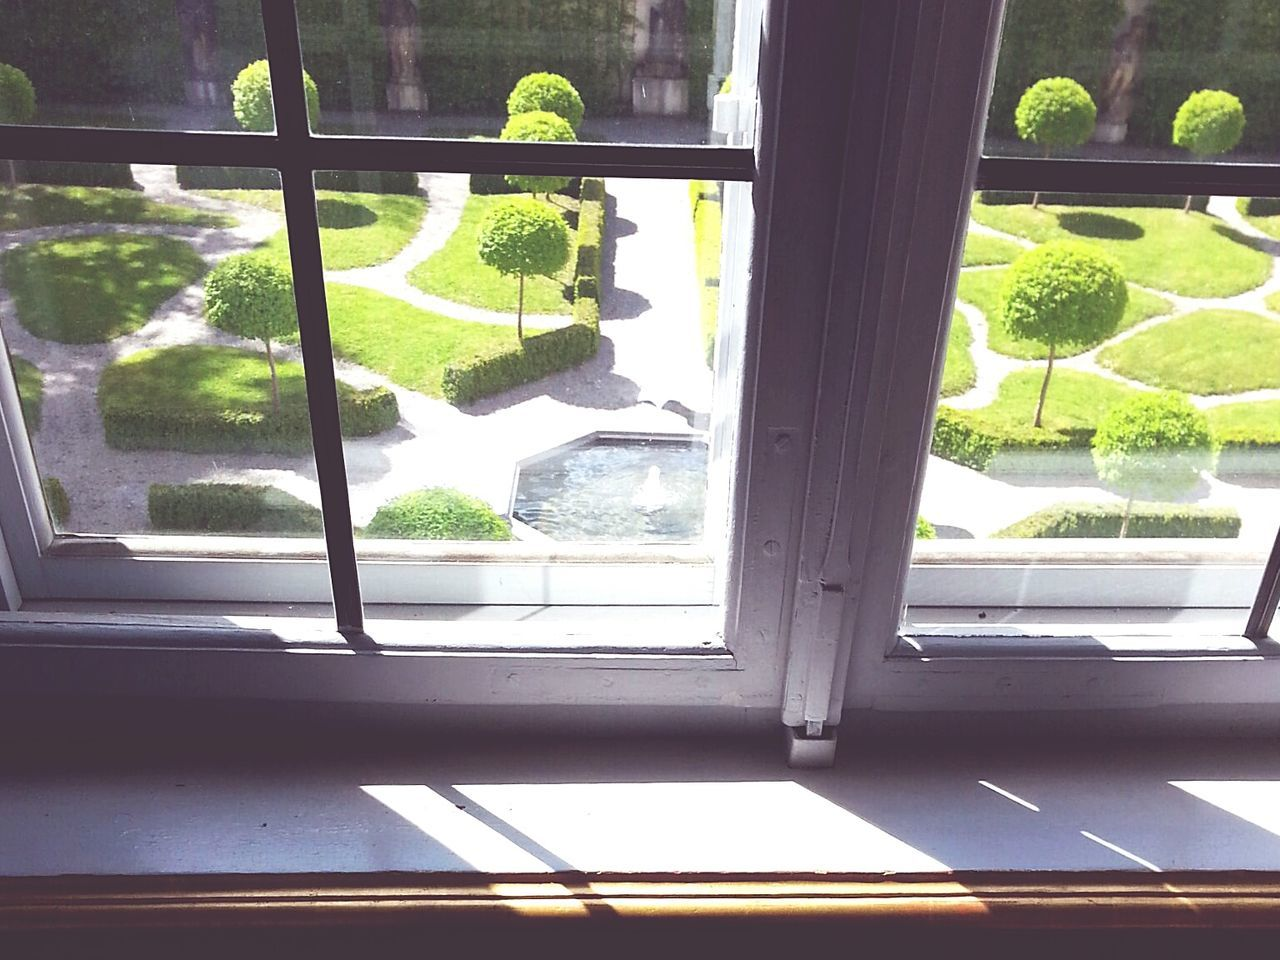 the view ⛲ Window Tree No People Day Indoors  Water Growth Nature Close-up Park 16th Century 17th Century Old-fashioned Pattern, Texture, Shape And Form Garden Garden Photography Green Color Old Window Castle Garden EyeEm Nature Lover Beauty In Nature EyeEm Best Shots - Nature Window View View From The Window... The Architect - 2017 EyeEm Awards Live For The Story